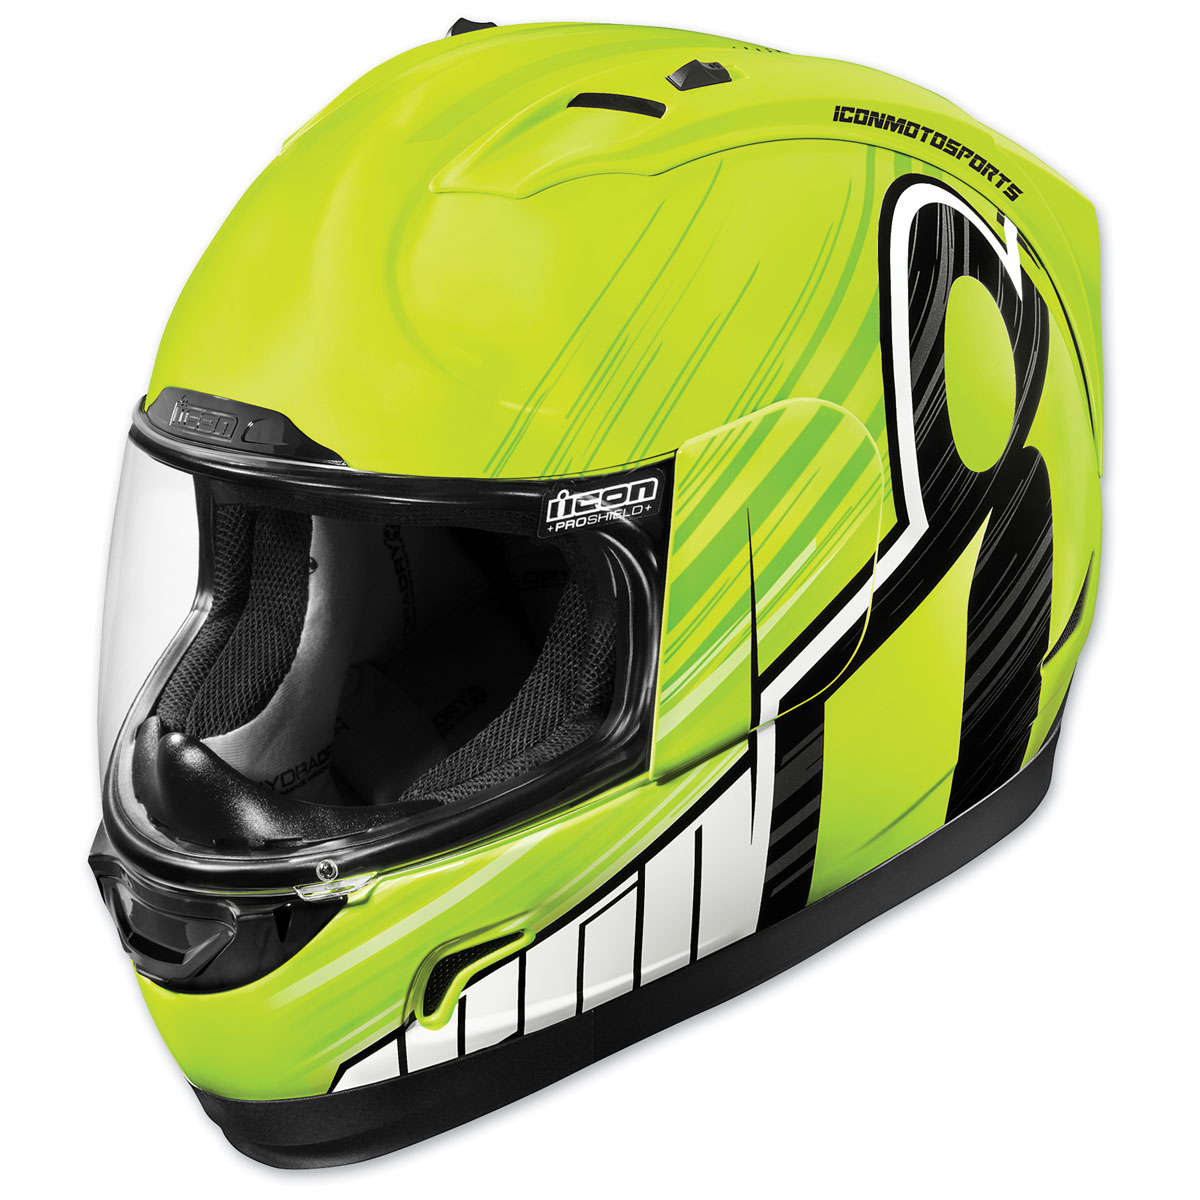 ICON Alliance Overlord Hi-Viz Full Face Helmet